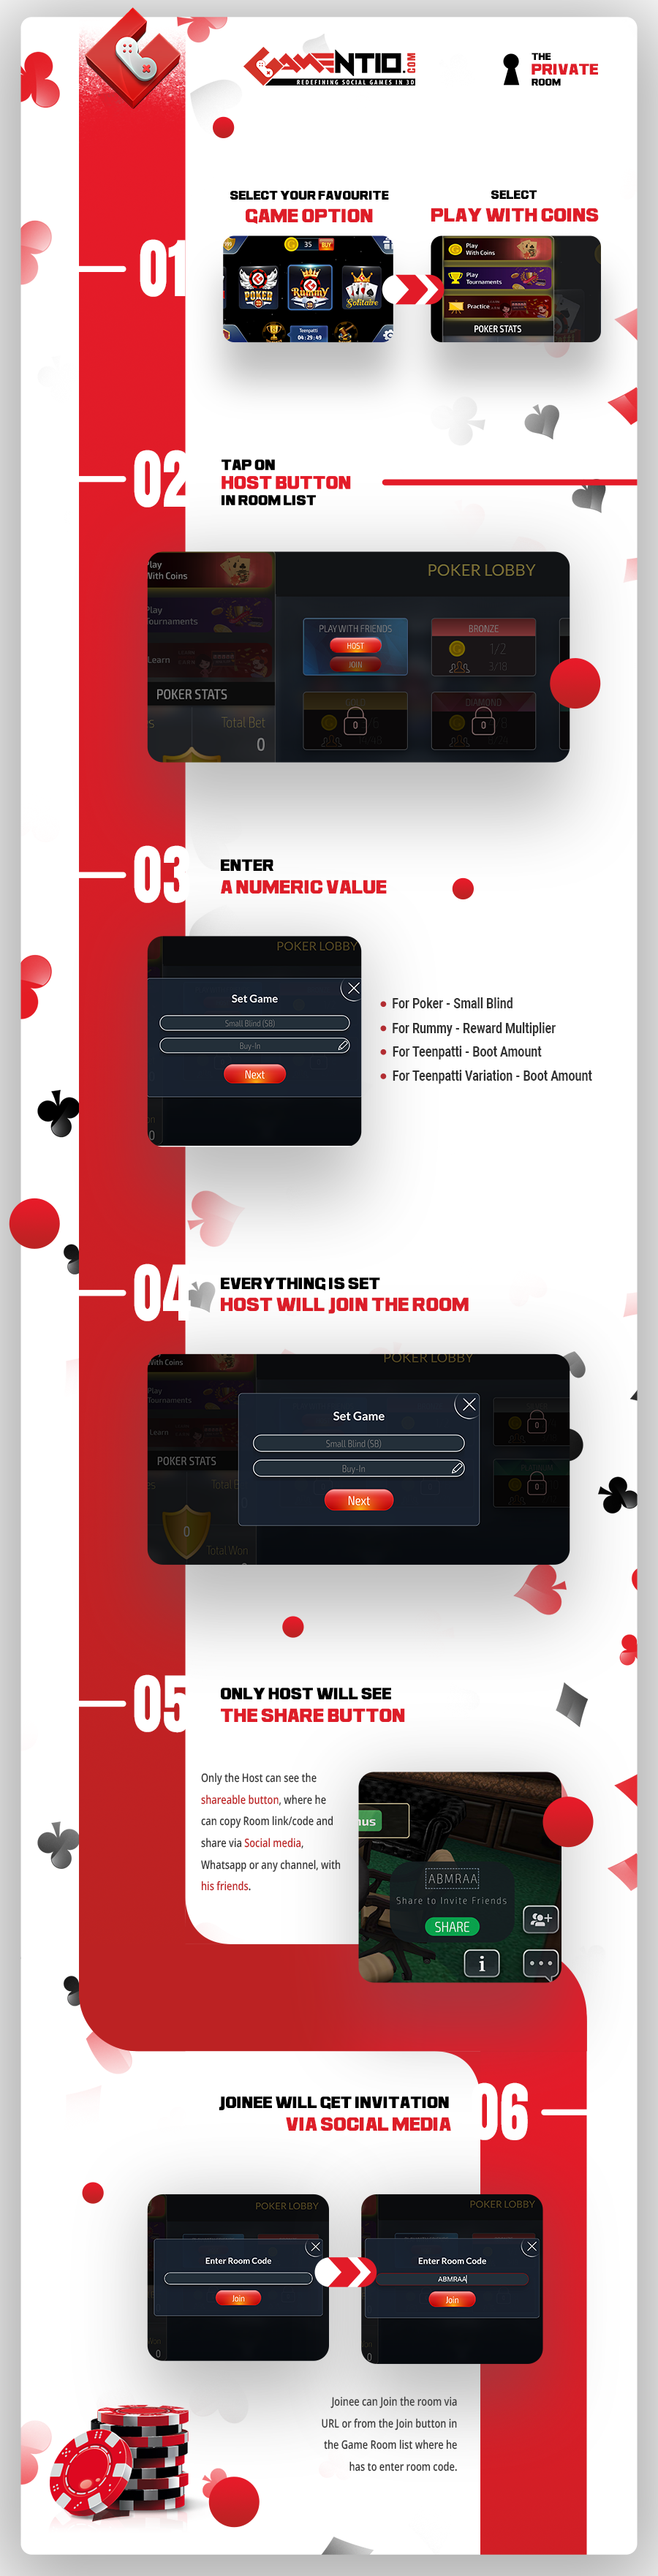 Invite friends to play poker, 3 patti or rummy online - Infographic